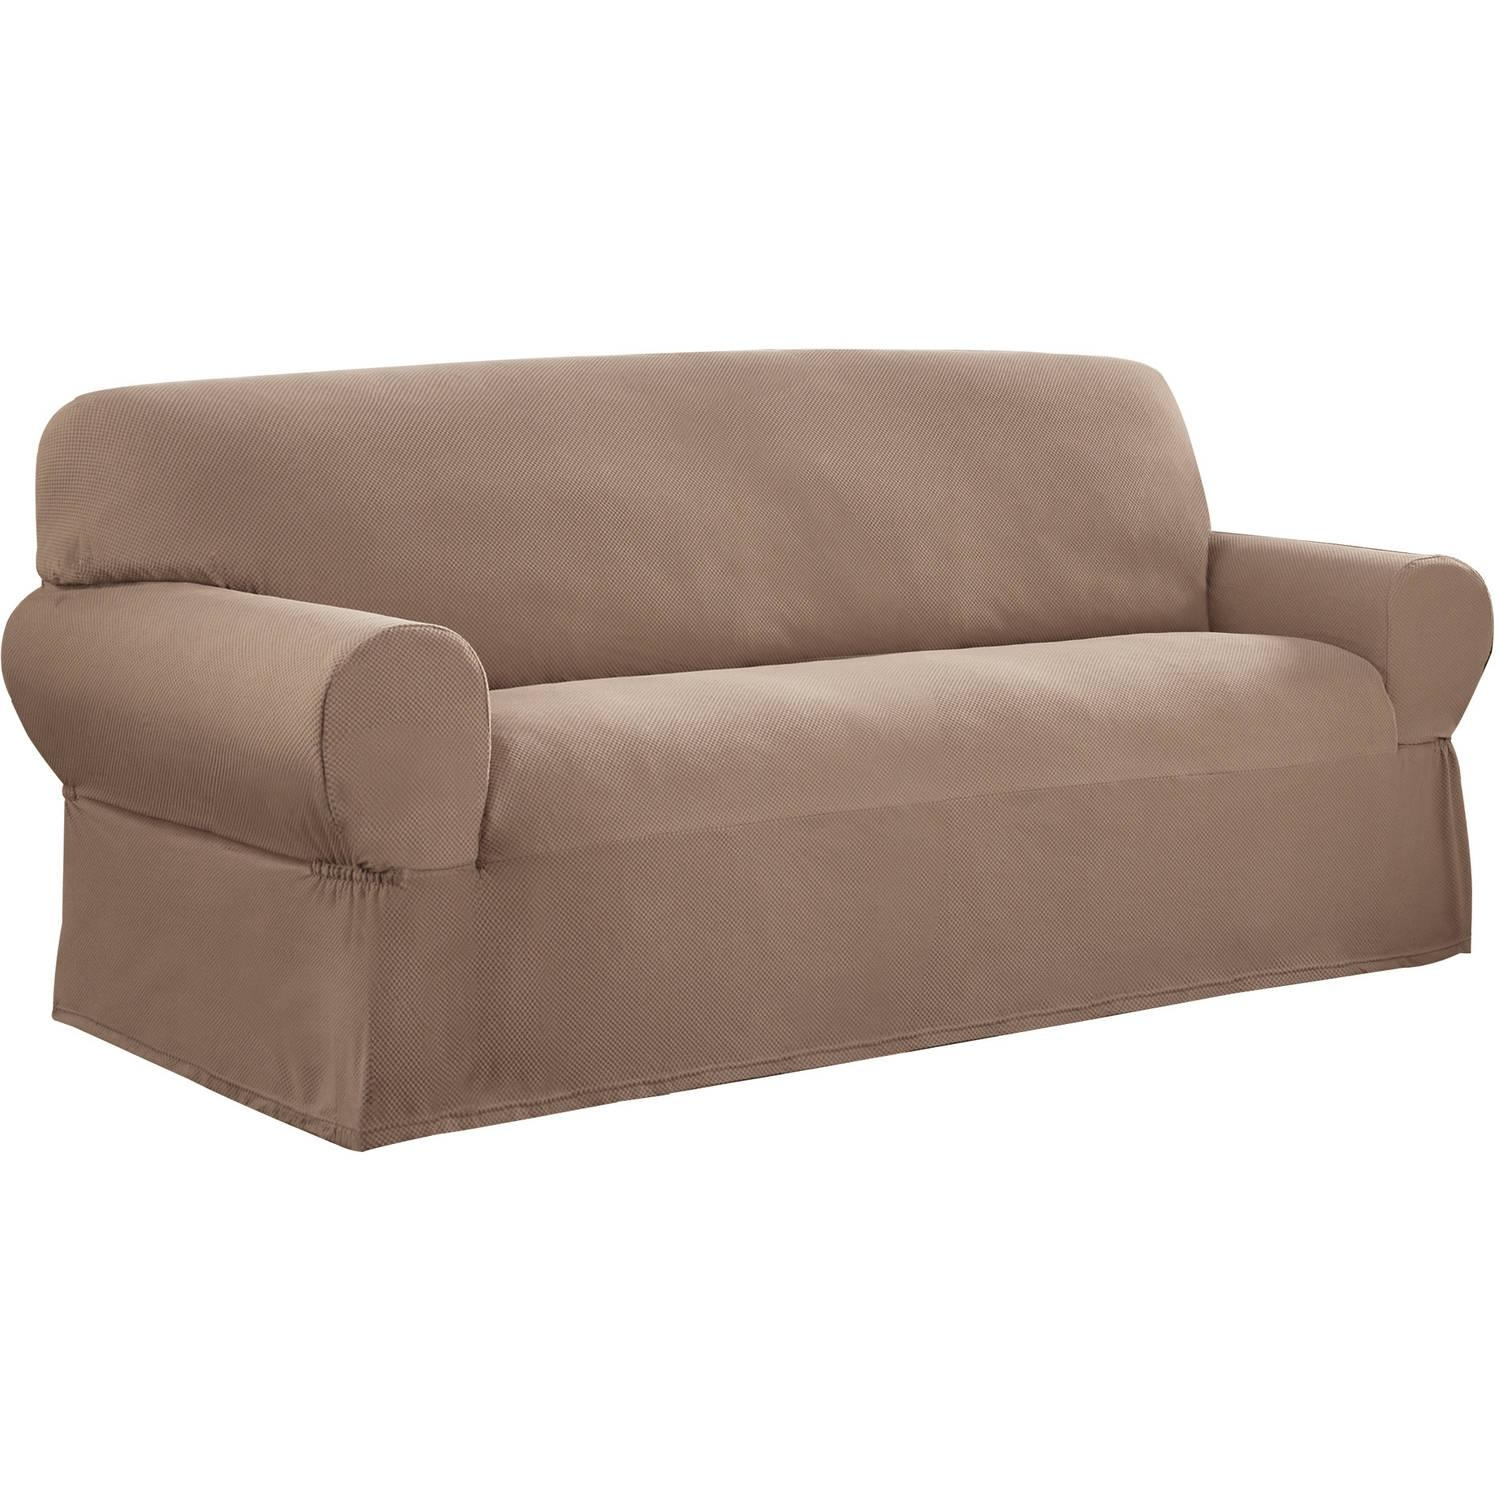 Mainstays 1 Piece Stretch Fabric Sofa Slipcover – Walmart Throughout 3 Piece Sofa Slipcovers (View 4 of 20)